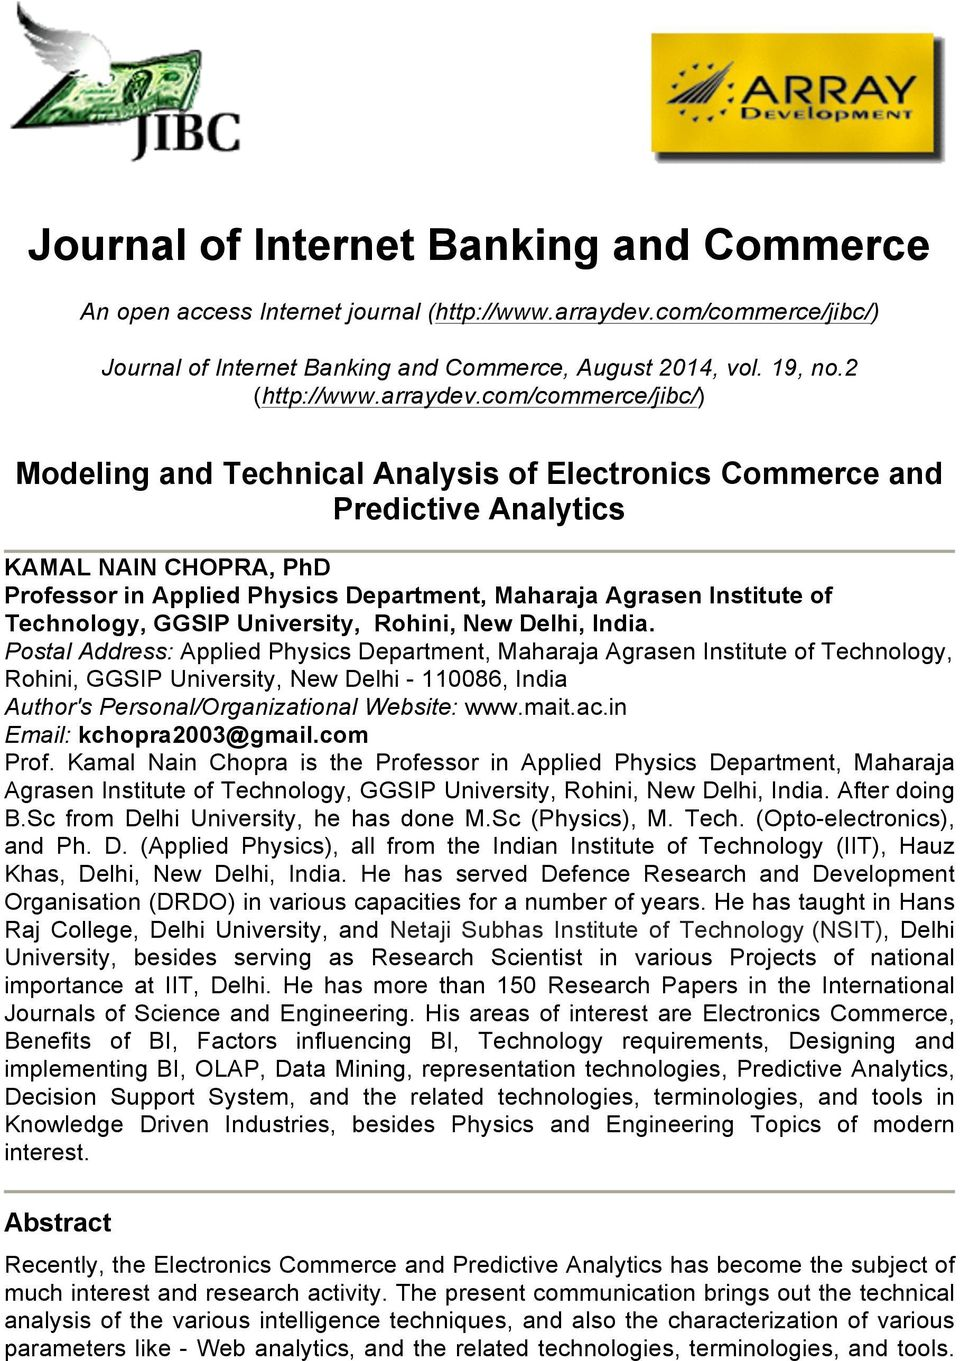 com/commerce/jibc/) Modeling and Technical Analysis of Electronics Commerce and Predictive Analytics KAMAL NAIN CHOPRA, PhD Professor in Applied Physics Department, Maharaja Agrasen Institute of